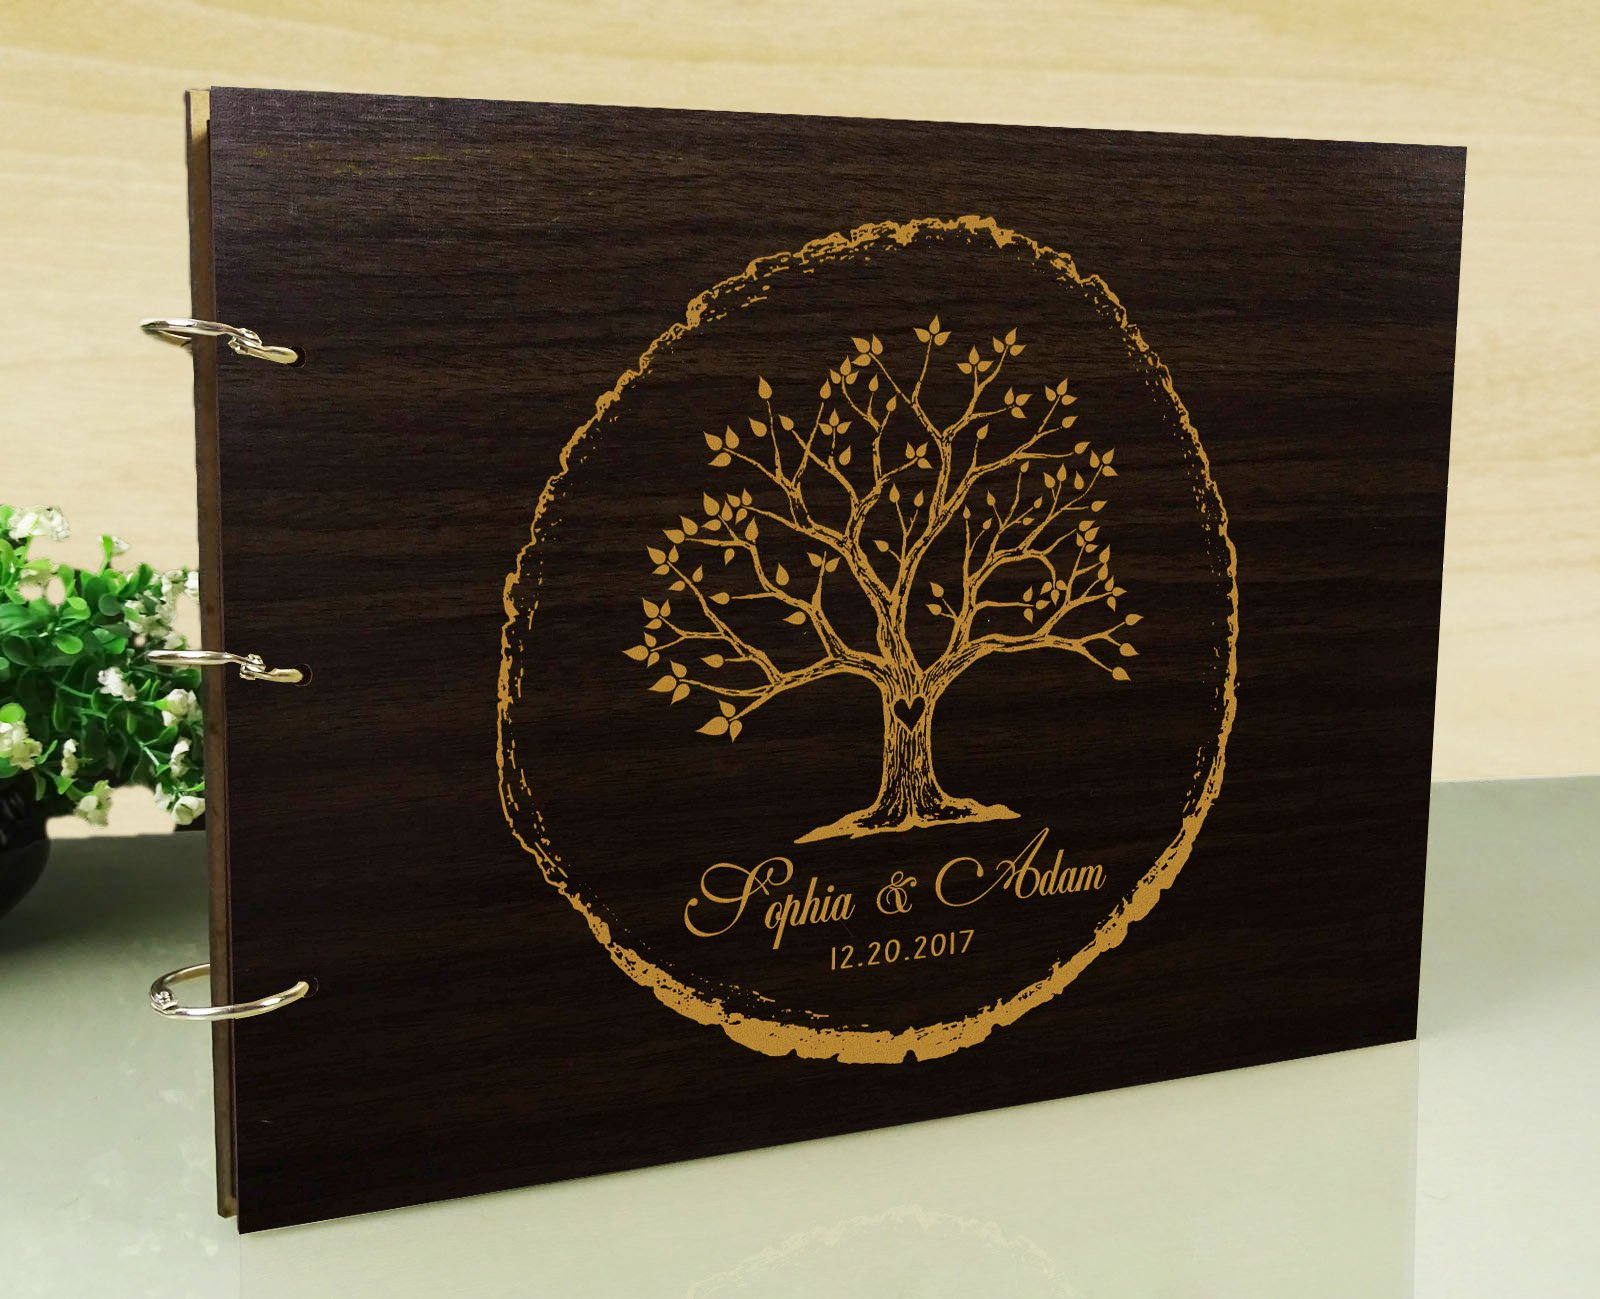 Handmade Tree Design Personalised Wooden Guest Book Rustic Wedding Wood Engraved Scrapbook by Darling Souvenir (Image #1)